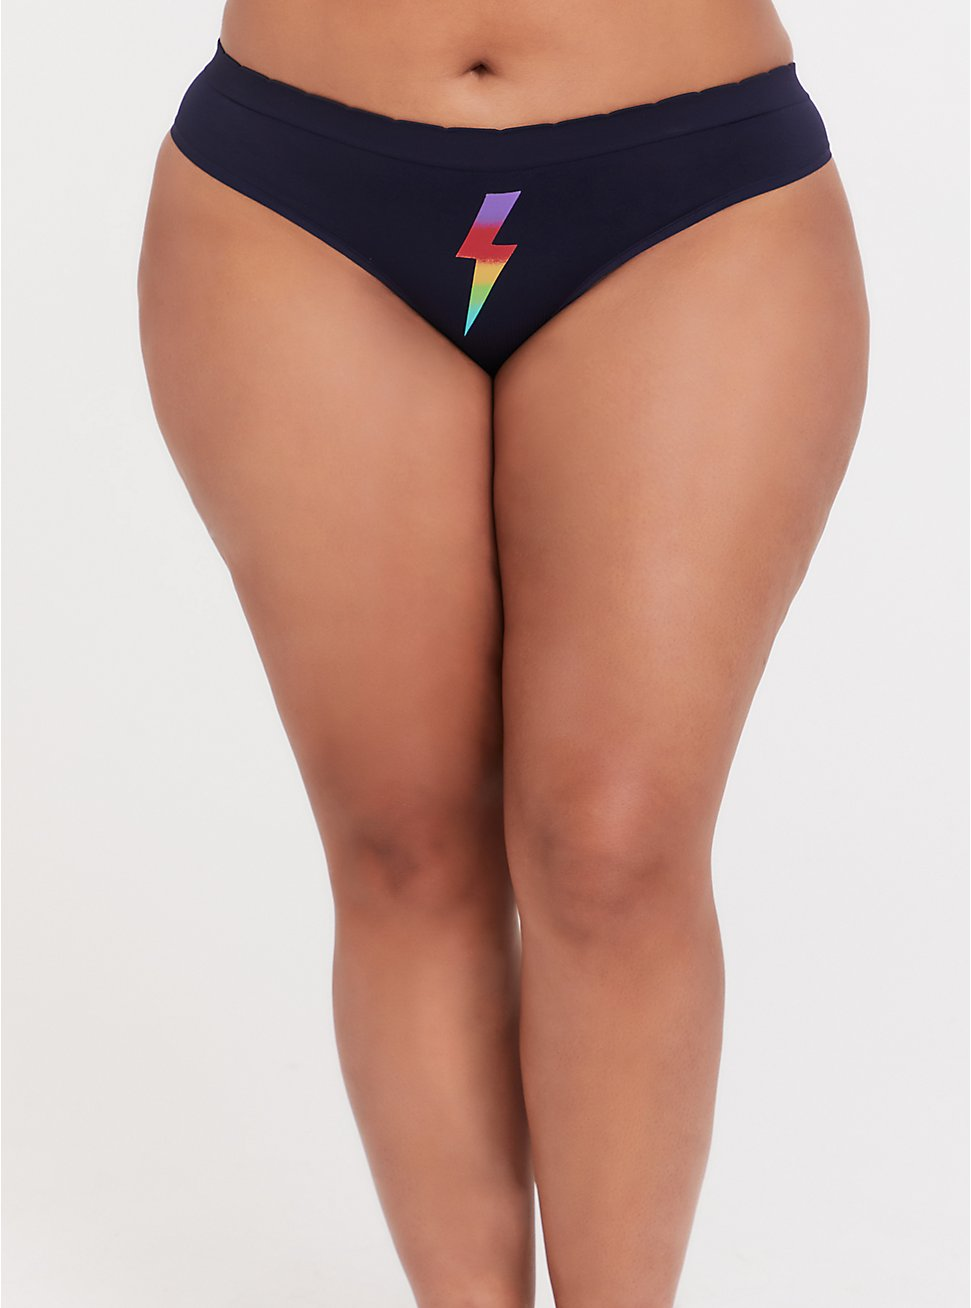 Plus Size Navy & Rainbow Bolt Seamless Thong Panty, LIGHTNING BOLT, hi-res